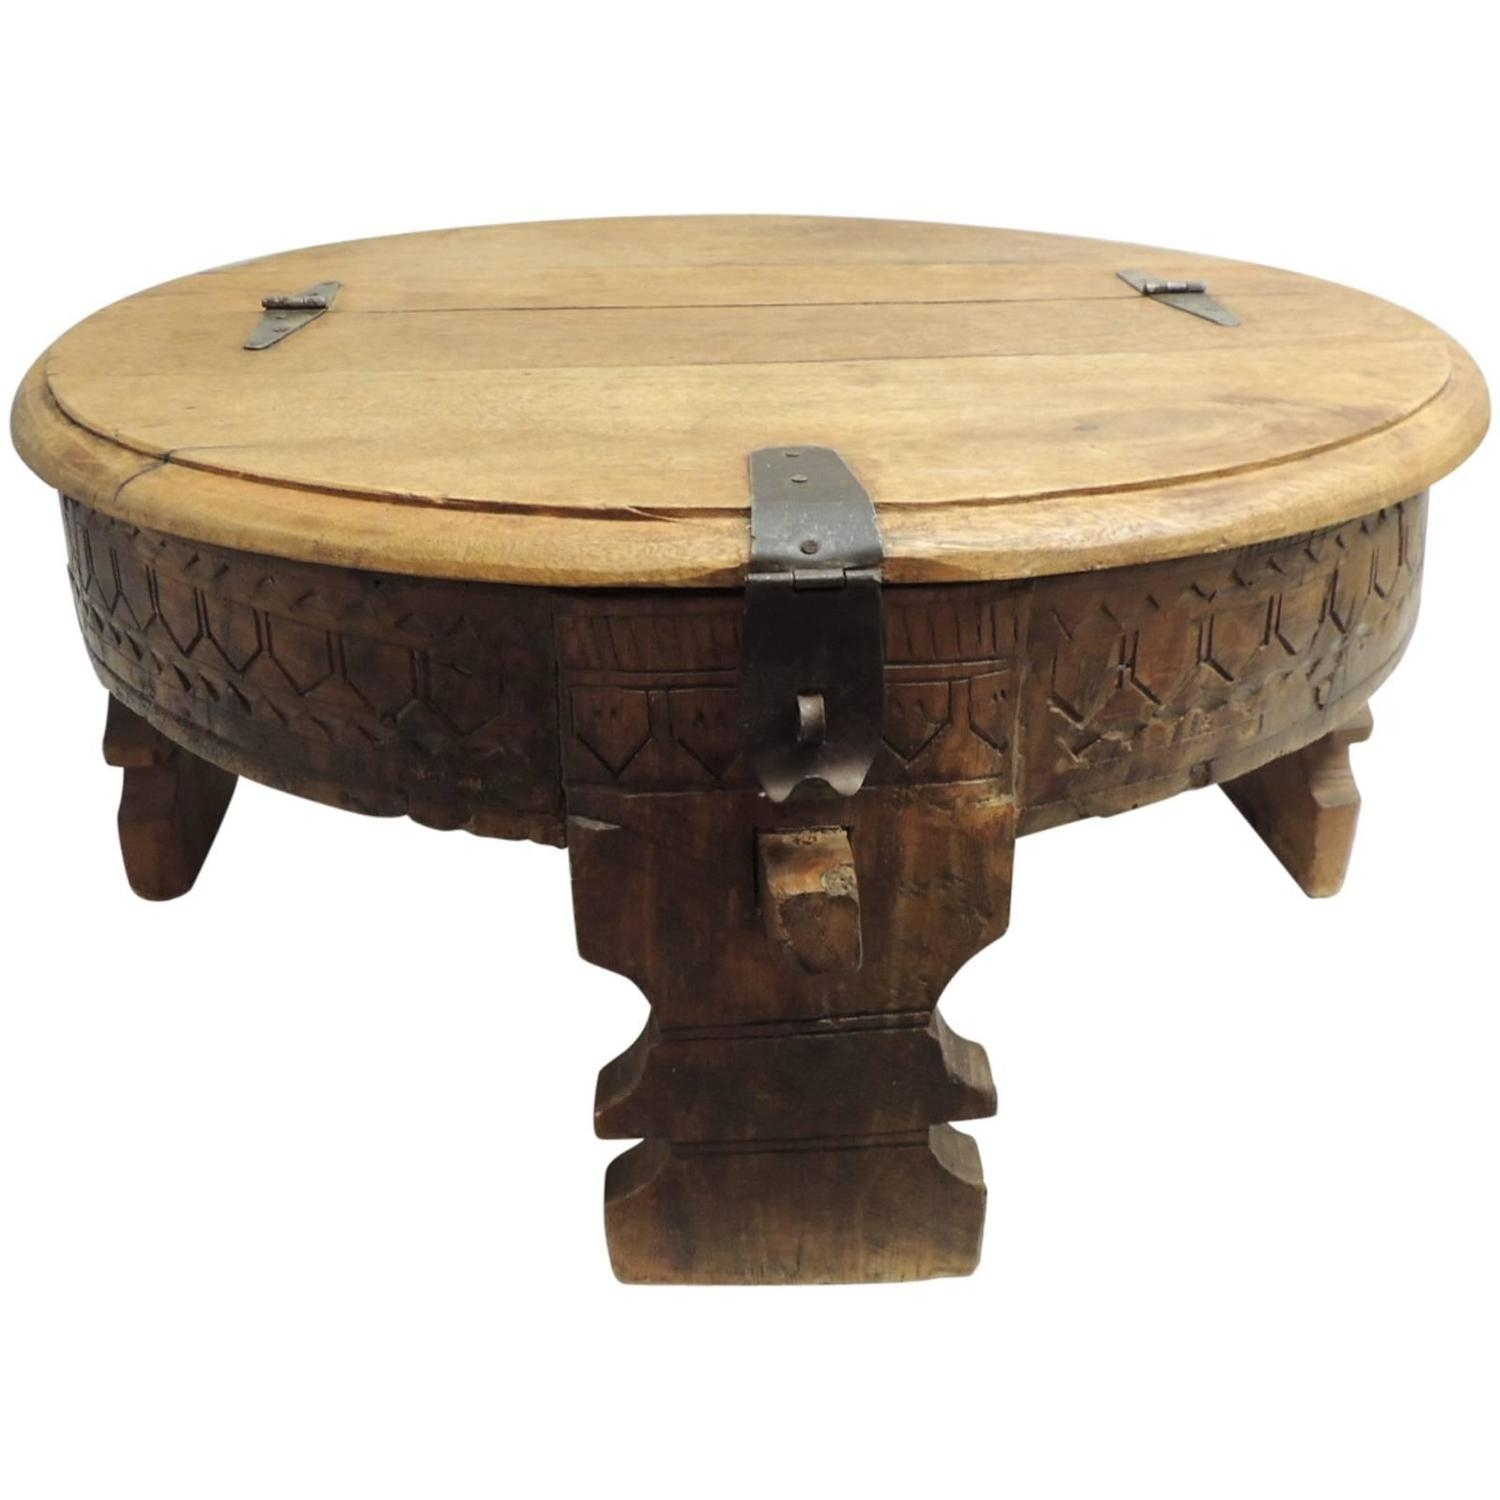 Moroccan Carved Round Coffee Table At 1Stdibs pertaining to Round Carved Wood Coffee Tables (Image 14 of 30)